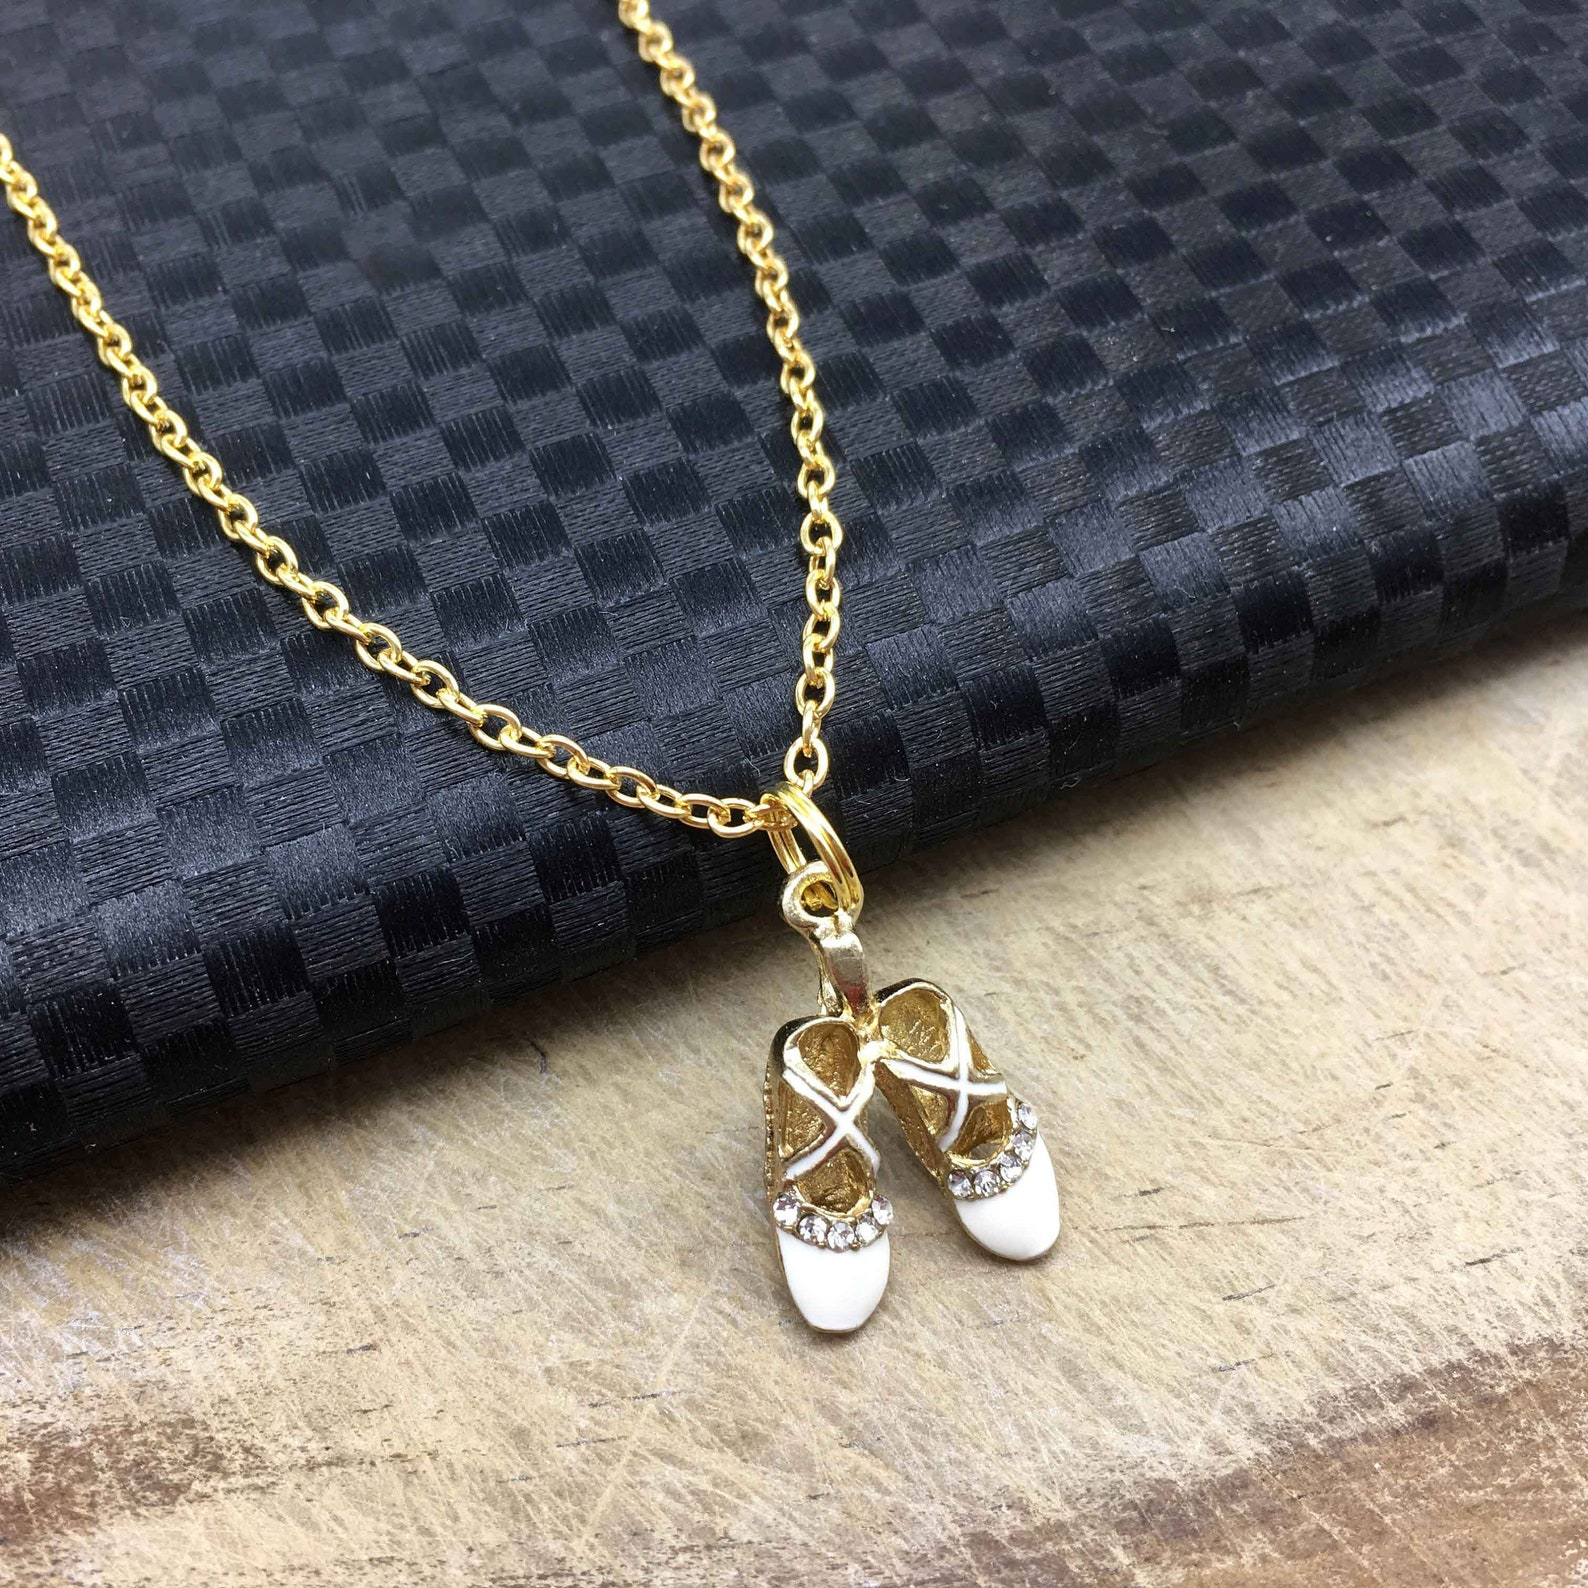 ballet shoes necklace ballet jewelry ballet gift dancer jewelry dancer gift dancer necklace ballet shoes charm ballet shoes pend